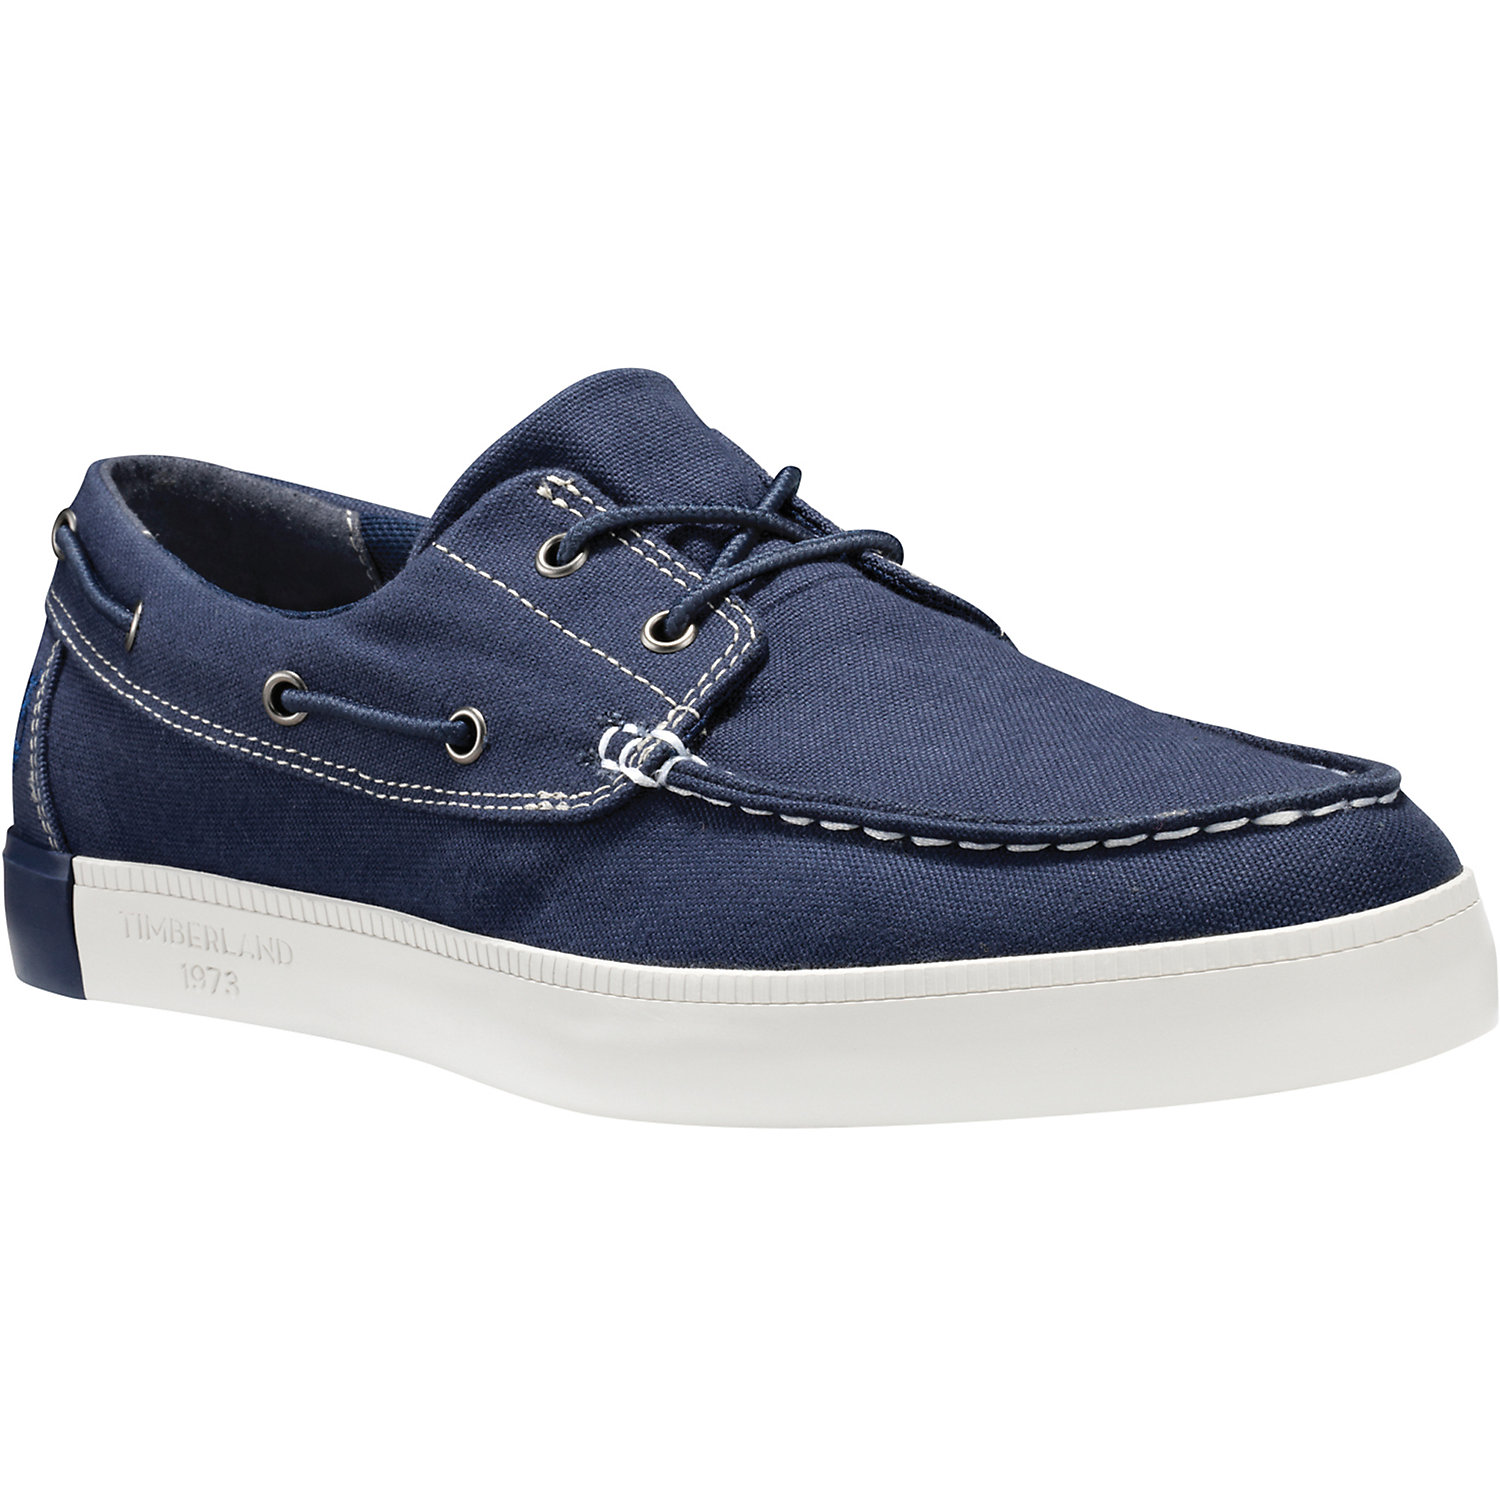 Timberland Classic 2 Eye Canvas Denim Boat Boat Shoes Deck